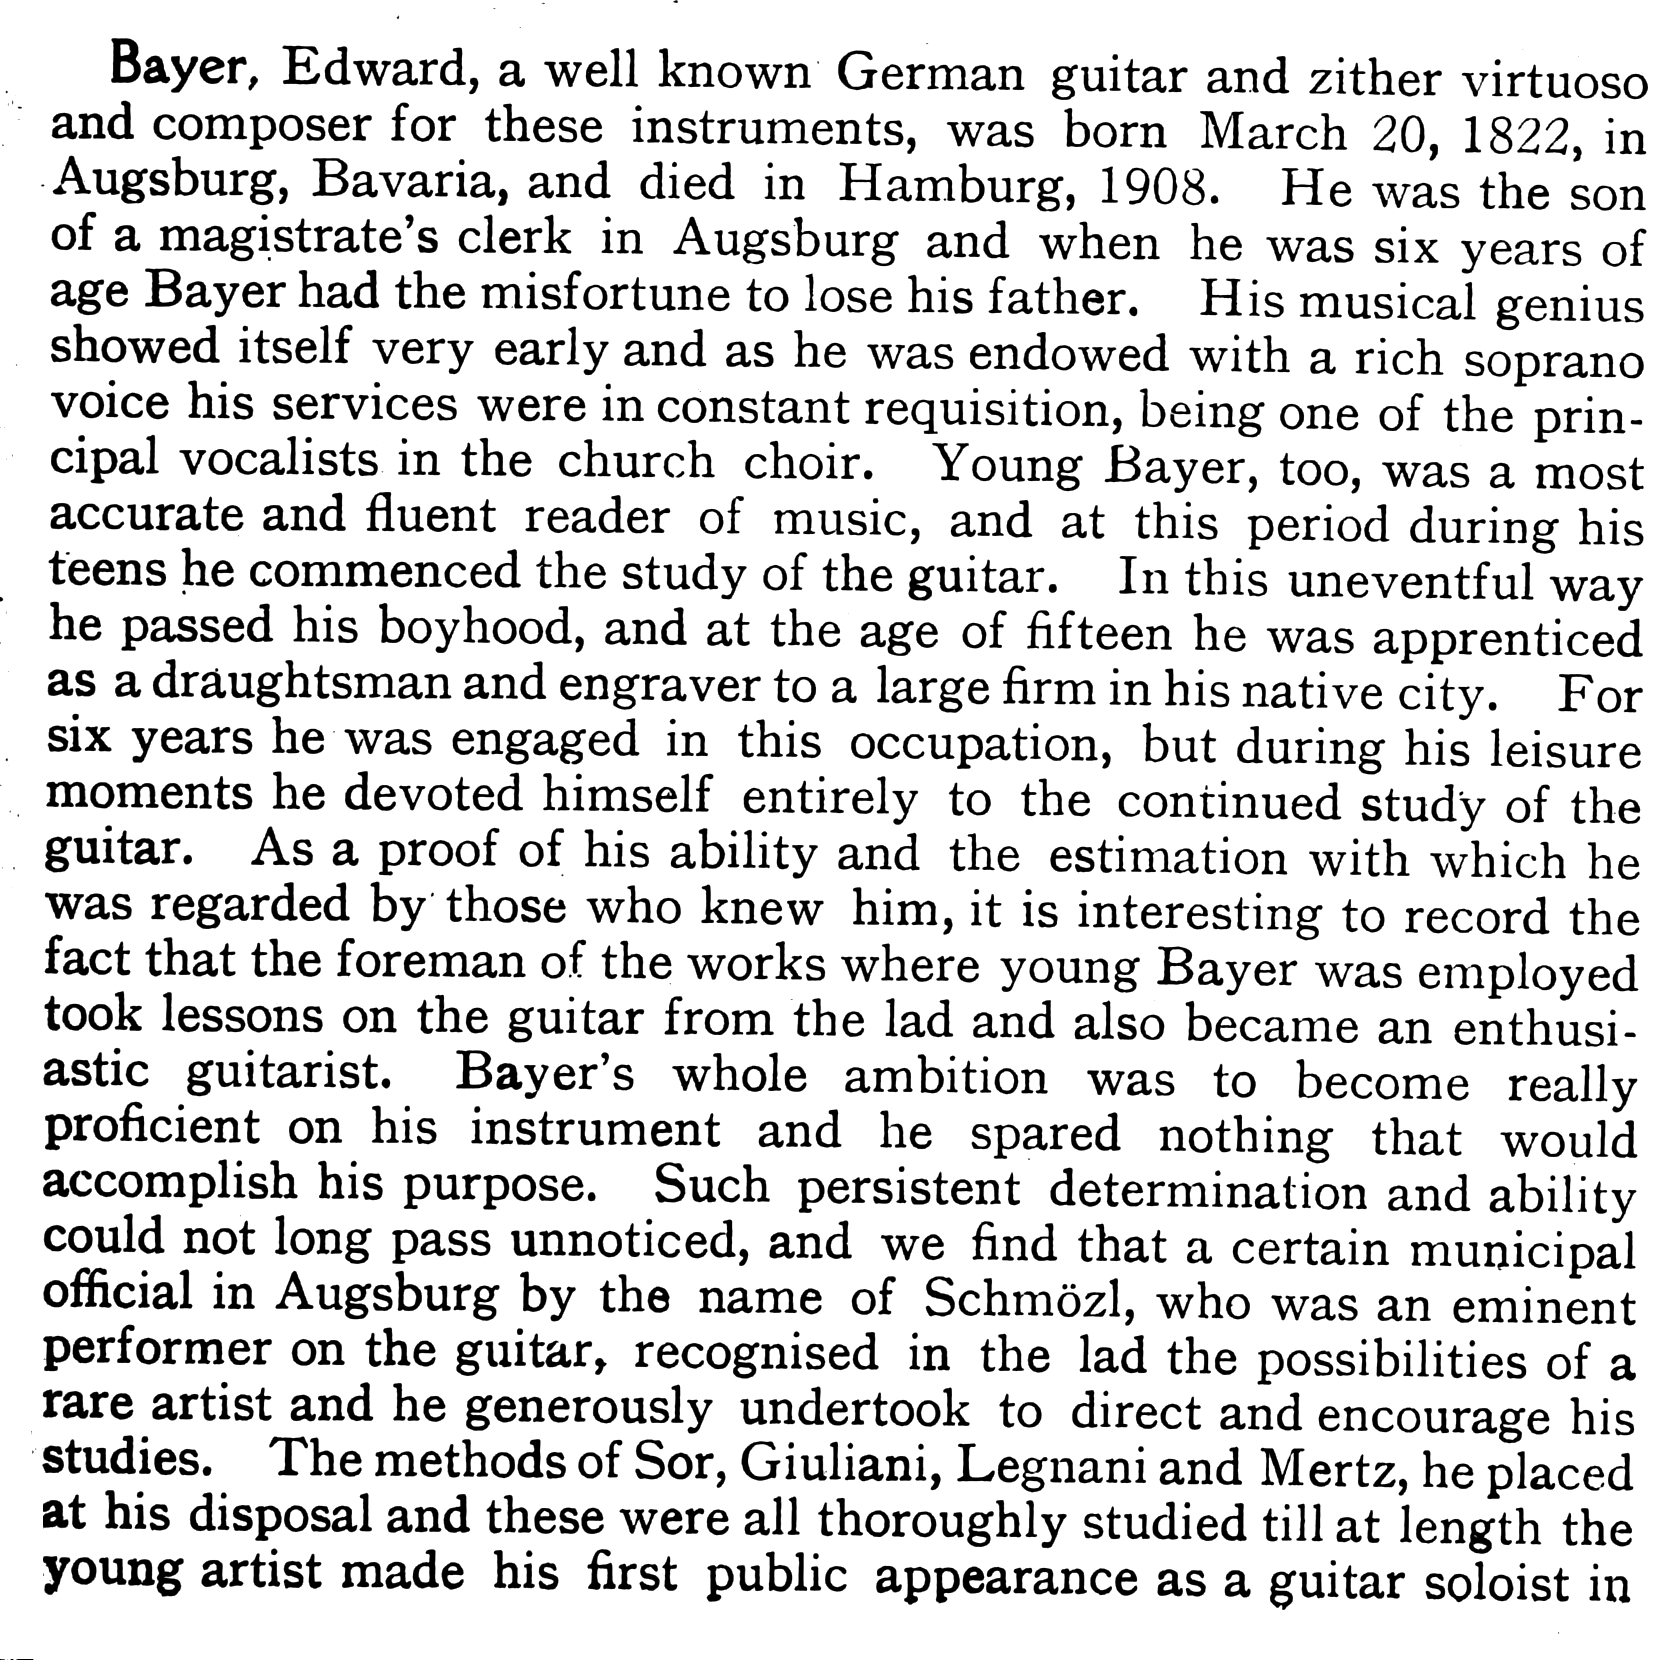 Biography of Eduard Bayer - Part 1